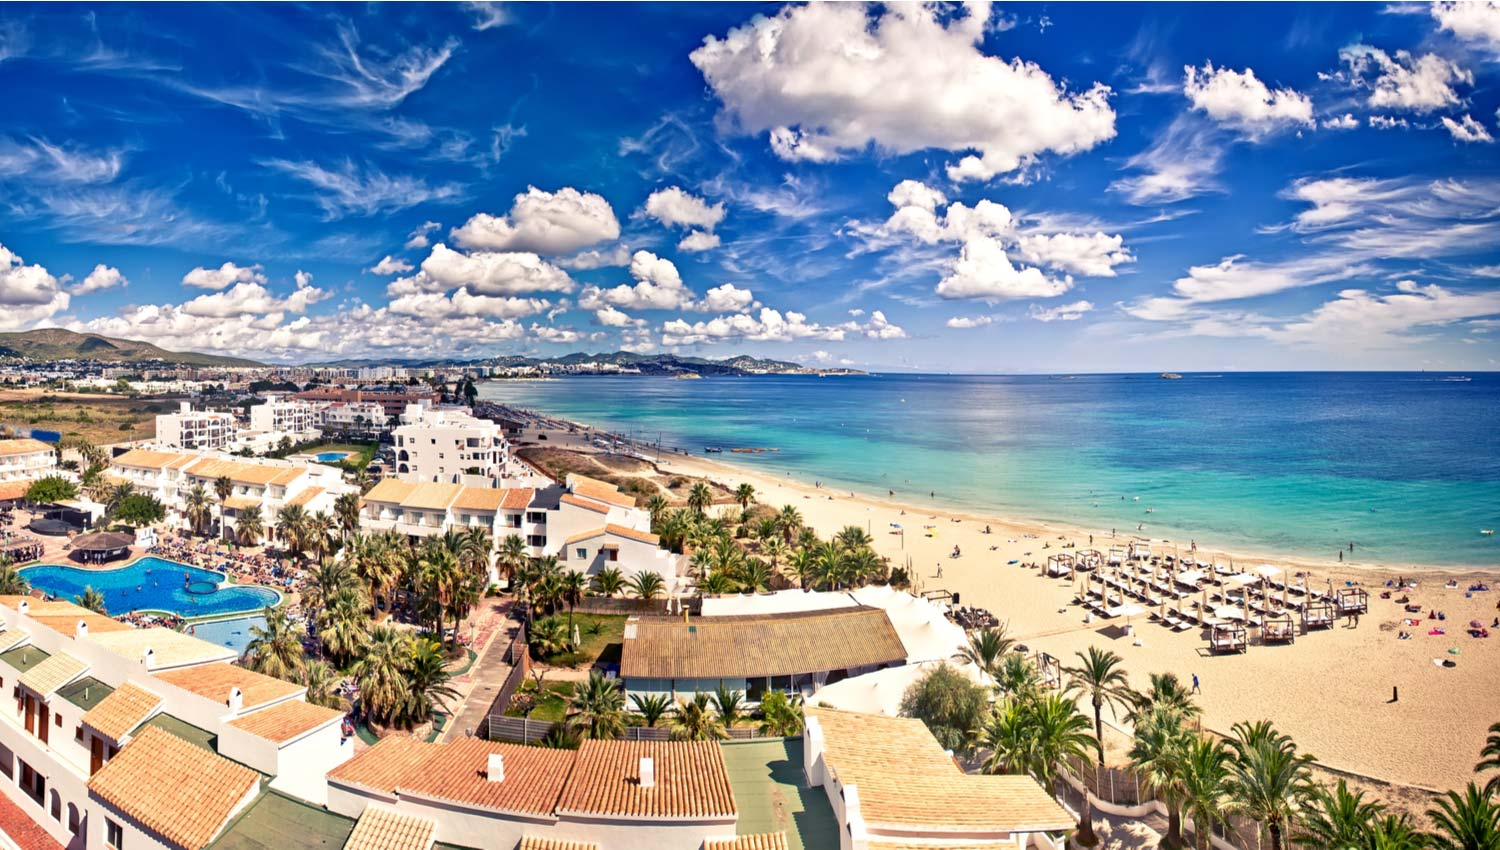 Playa d'en Bossa header